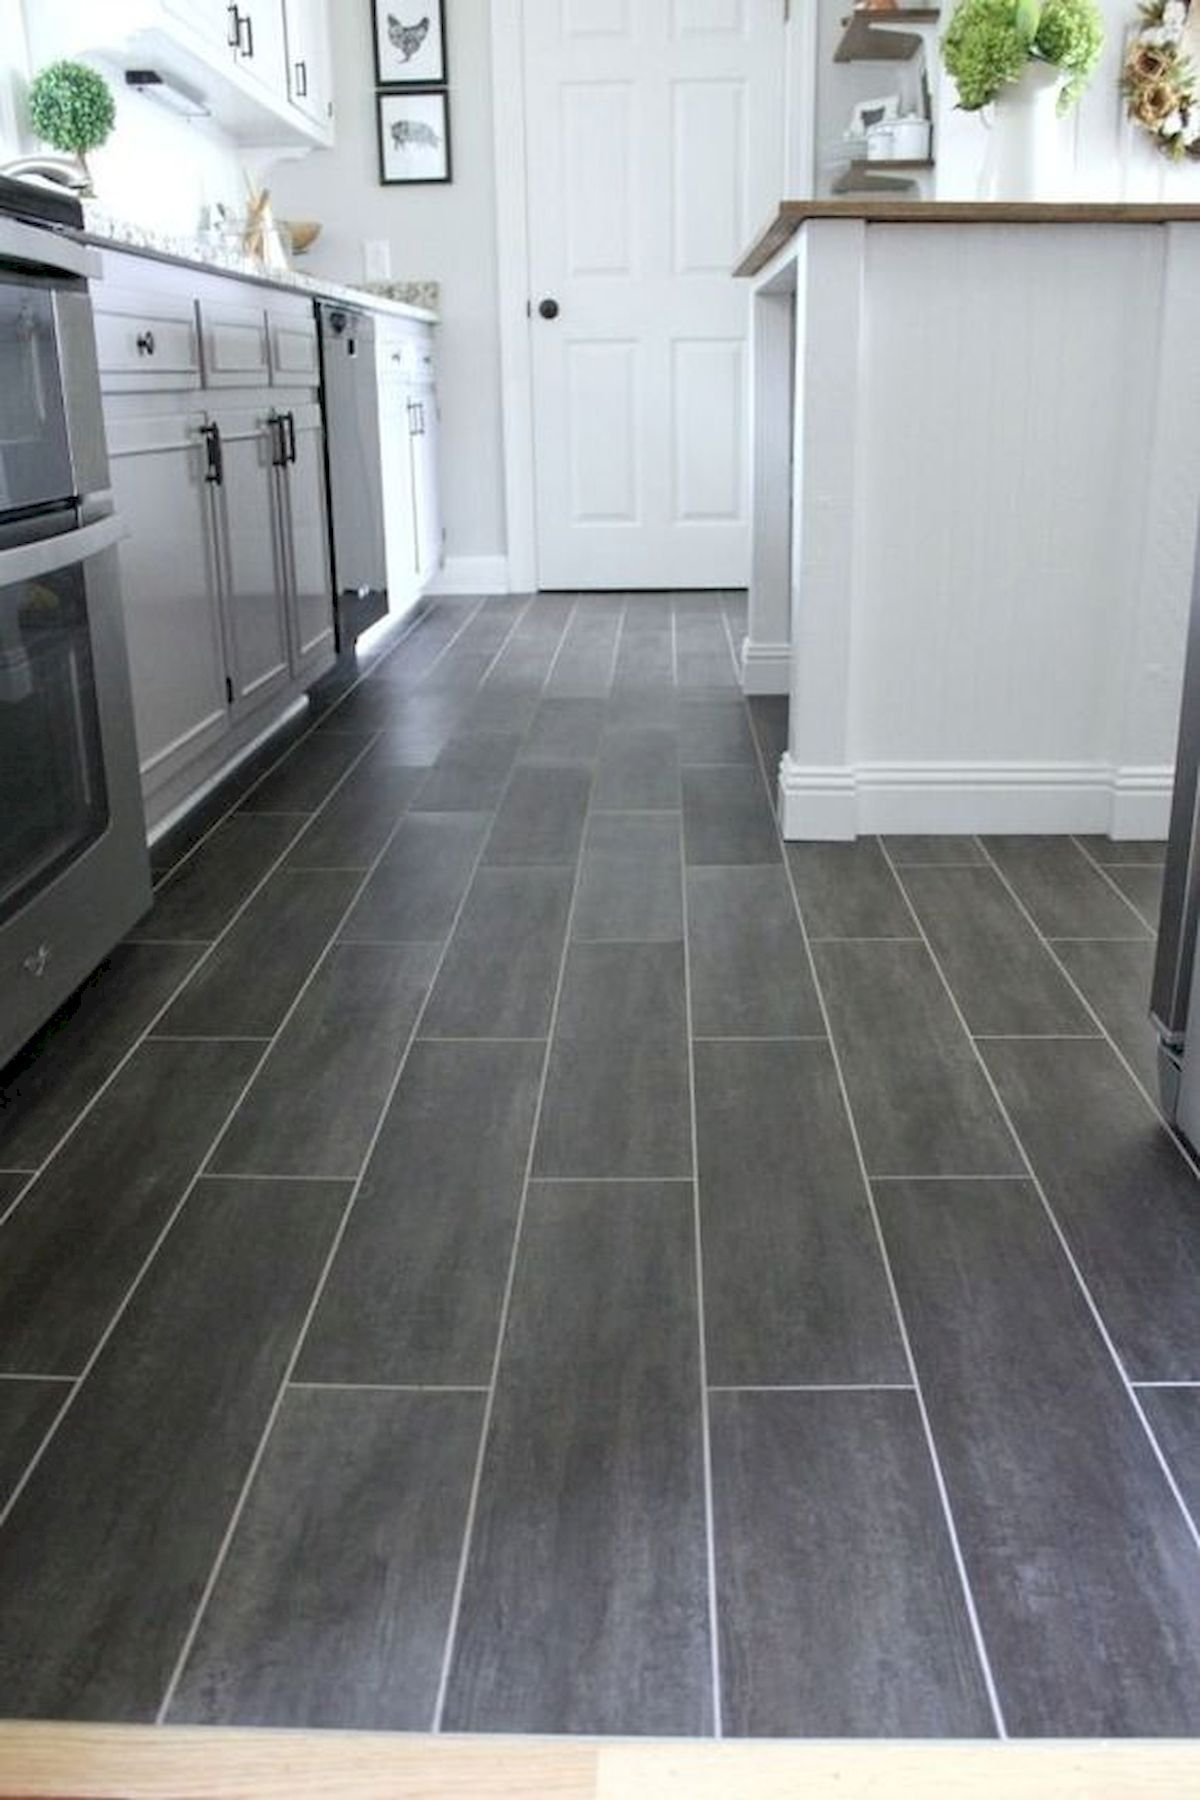 42 Awesome Tile Flooring Designs Ideas For Modern Kitchen In 2020